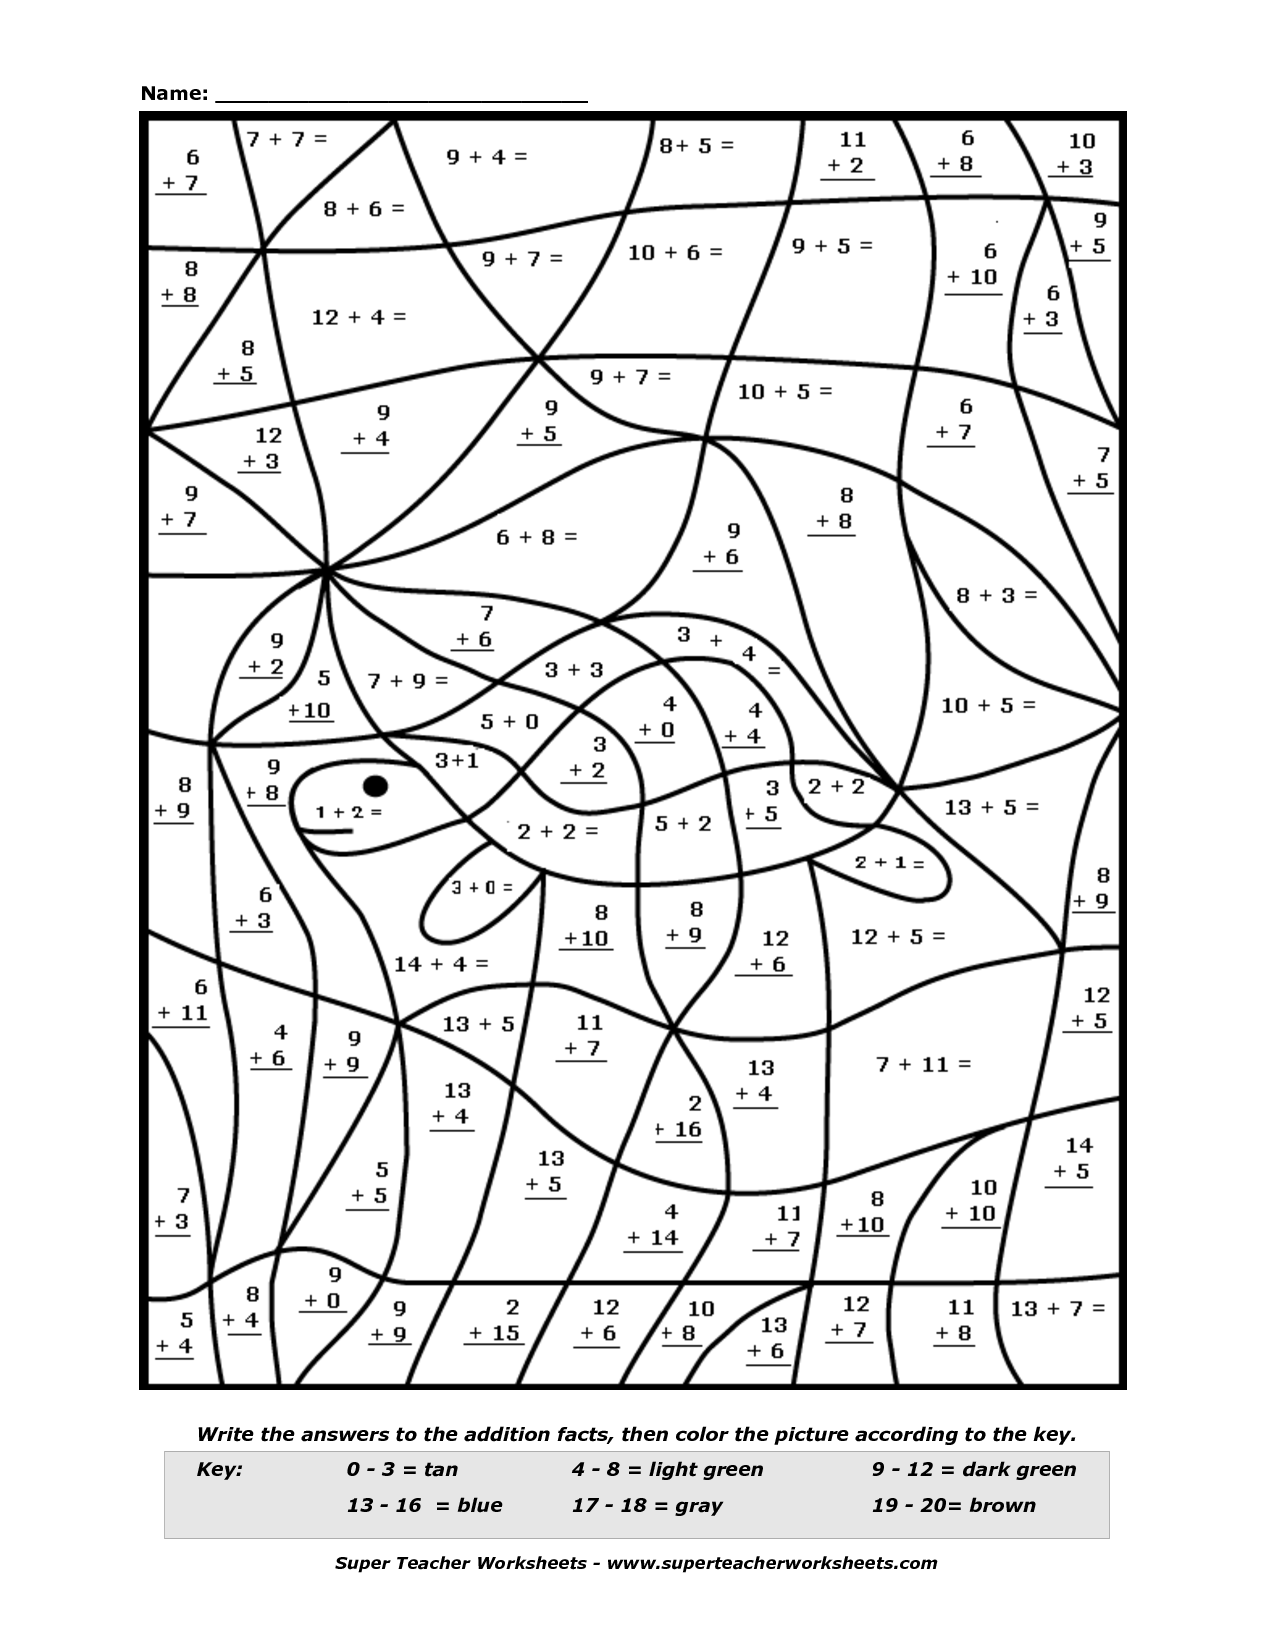 15 Best Images Of Super Teacher Worksheets Coloring Pages